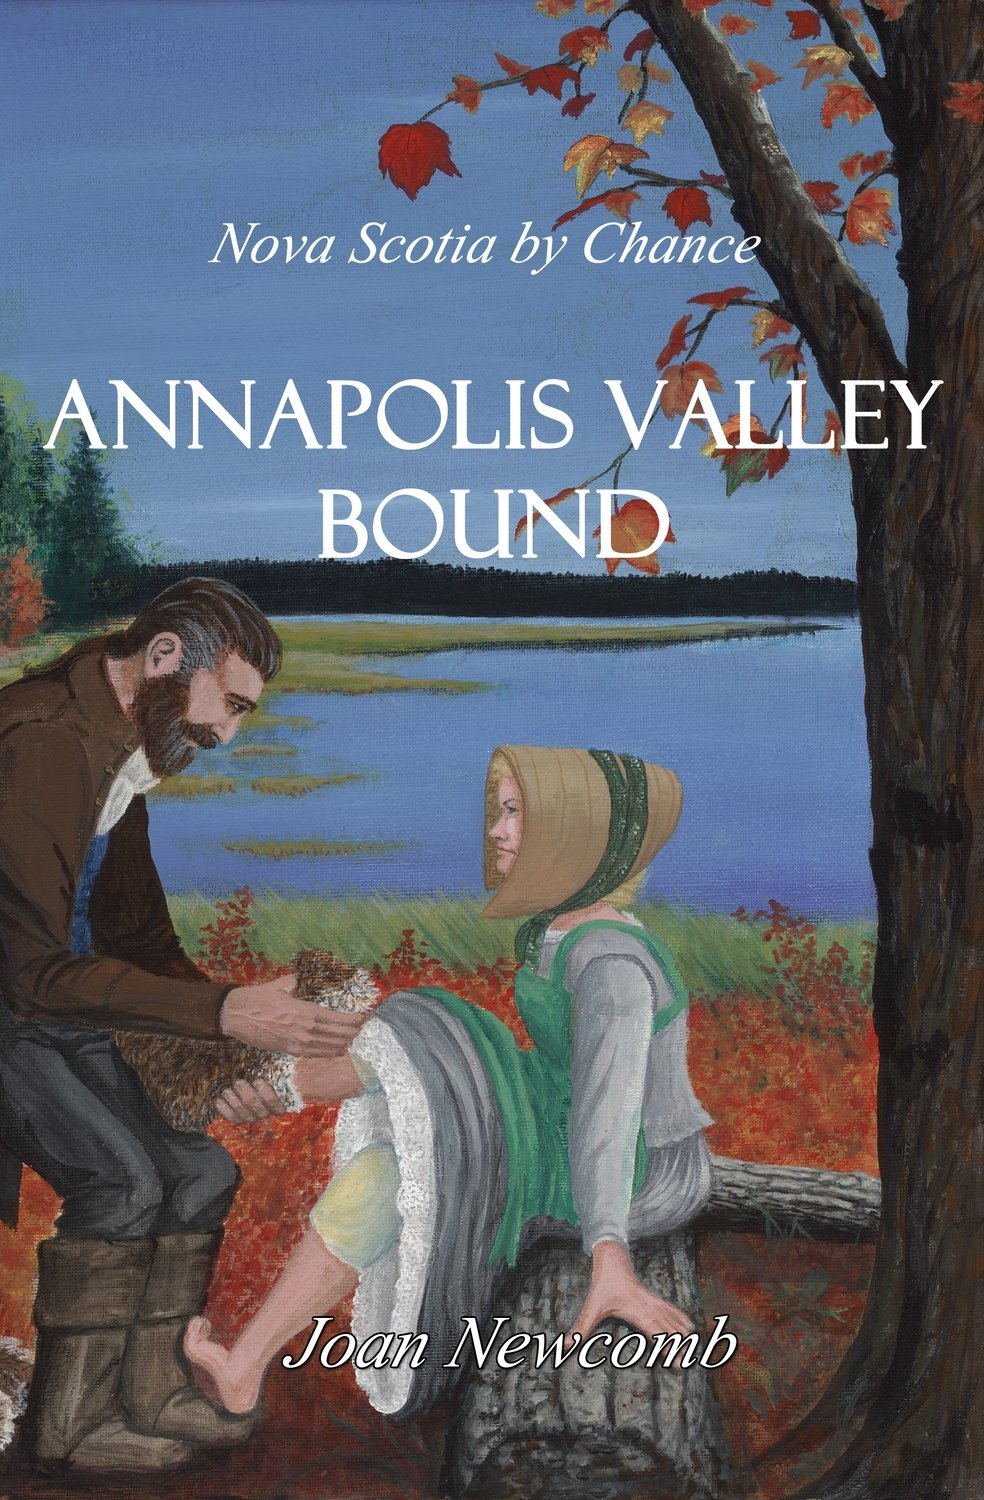 Annapolis Valley Bound EPUB (Nova Scotia by Chance # 2)